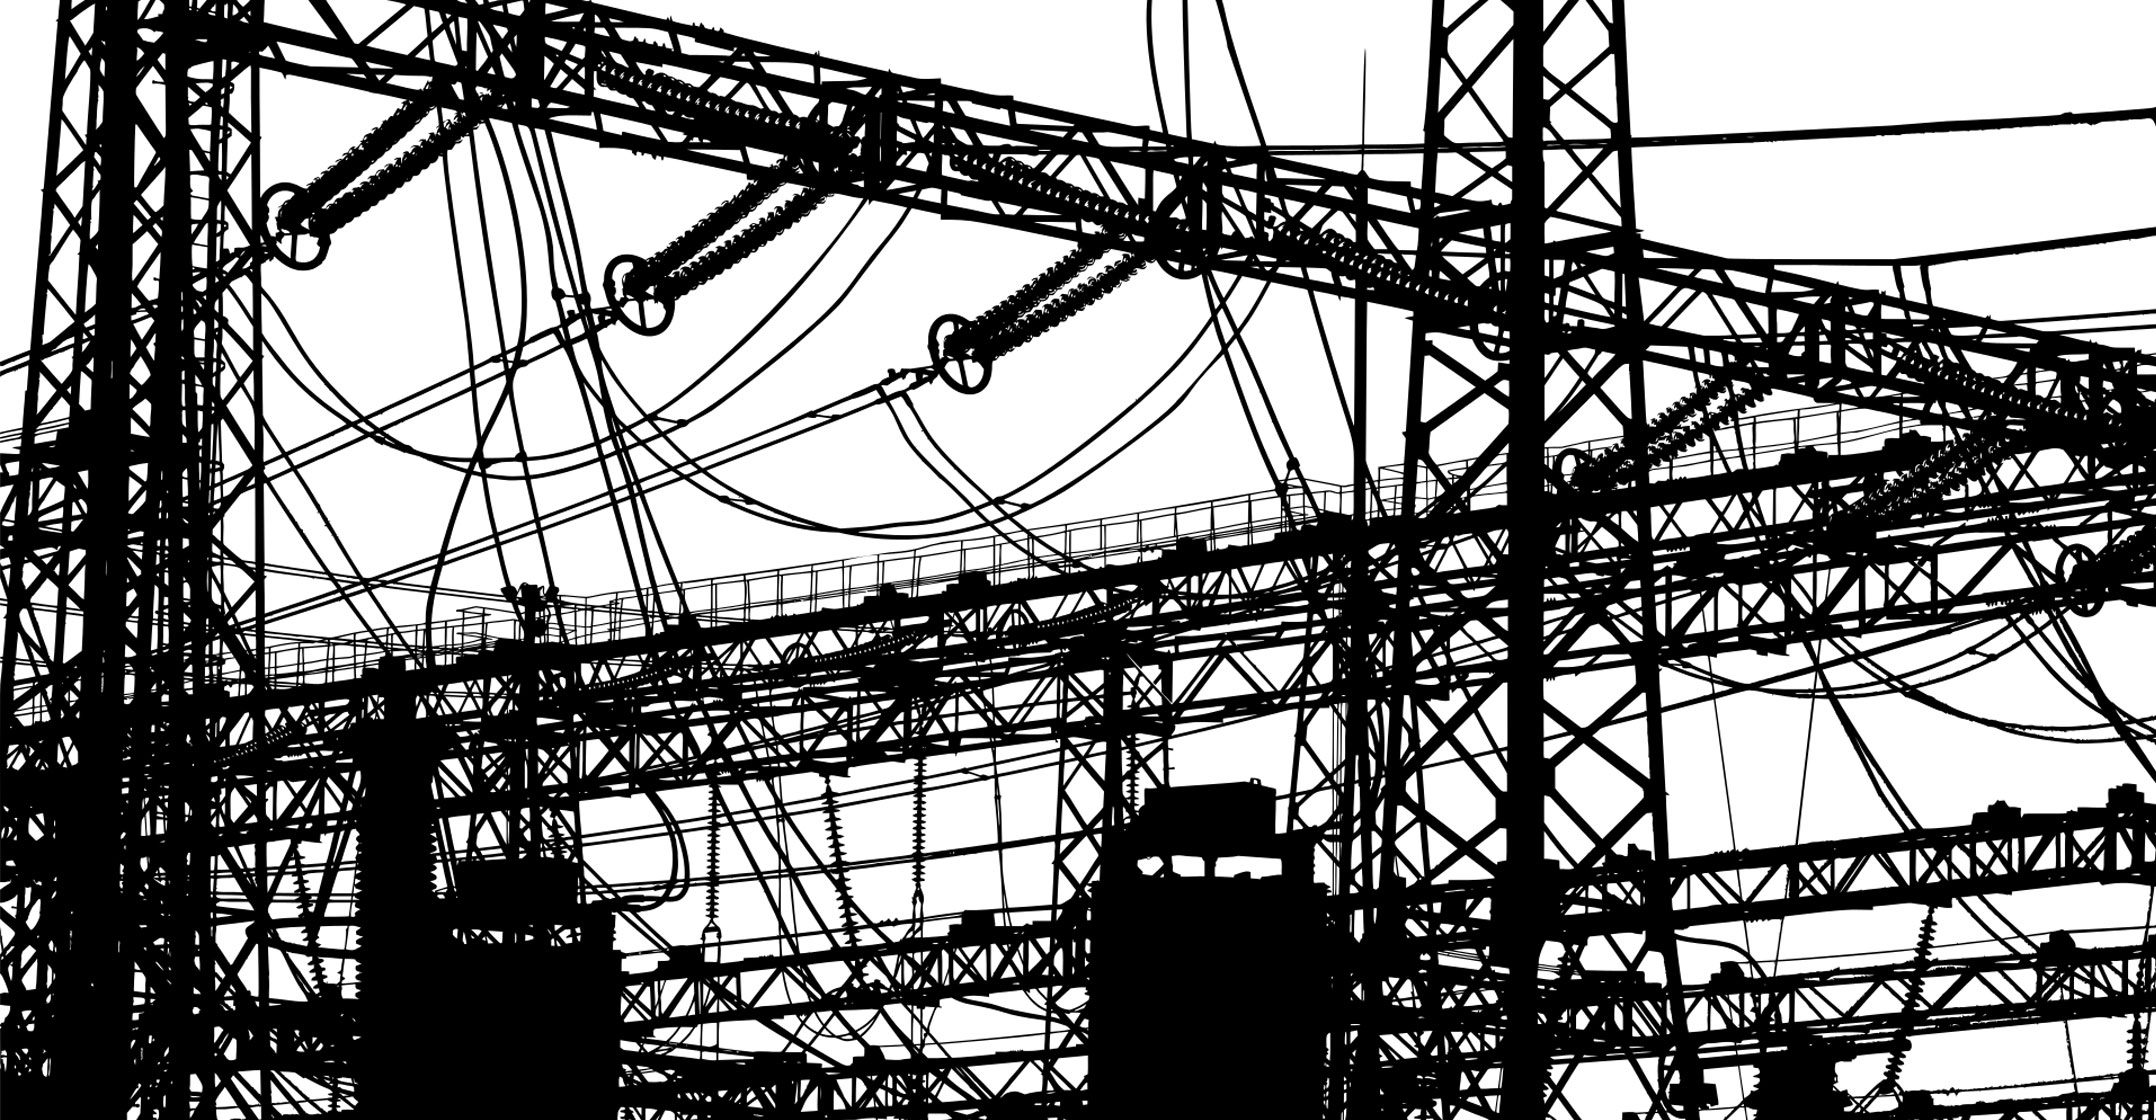 Time is fast running out to save Eskom from bankruptcy - TechCentral